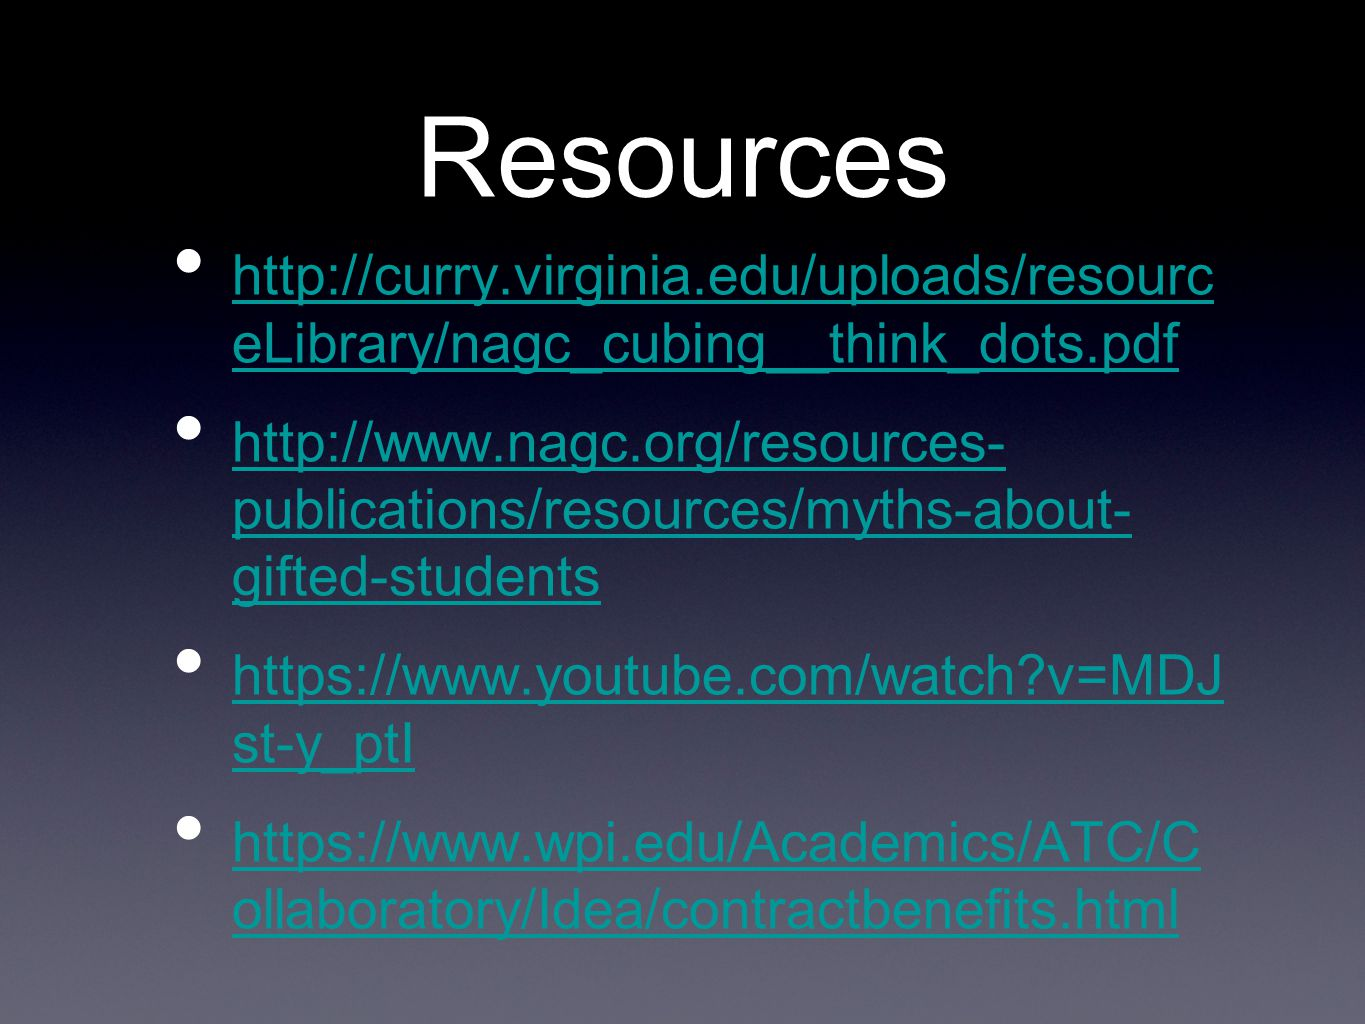 Resources http://curry.virginia.edu/uploads/resourc eLibrary/nagc_cubing__think_dots.pdf http://curry.virginia.edu/uploads/resourc eLibrary/nagc_cubing__think_dots.pdf http://www.nagc.org/resources- publications/resources/myths-about- gifted-students http://www.nagc.org/resources- publications/resources/myths-about- gifted-students https://www.youtube.com/watch?v=MDJ st-y_ptI https://www.youtube.com/watch?v=MDJ st-y_ptI https://www.wpi.edu/Academics/ATC/C ollaboratory/Idea/contractbenefits.html https://www.wpi.edu/Academics/ATC/C ollaboratory/Idea/contractbenefits.html